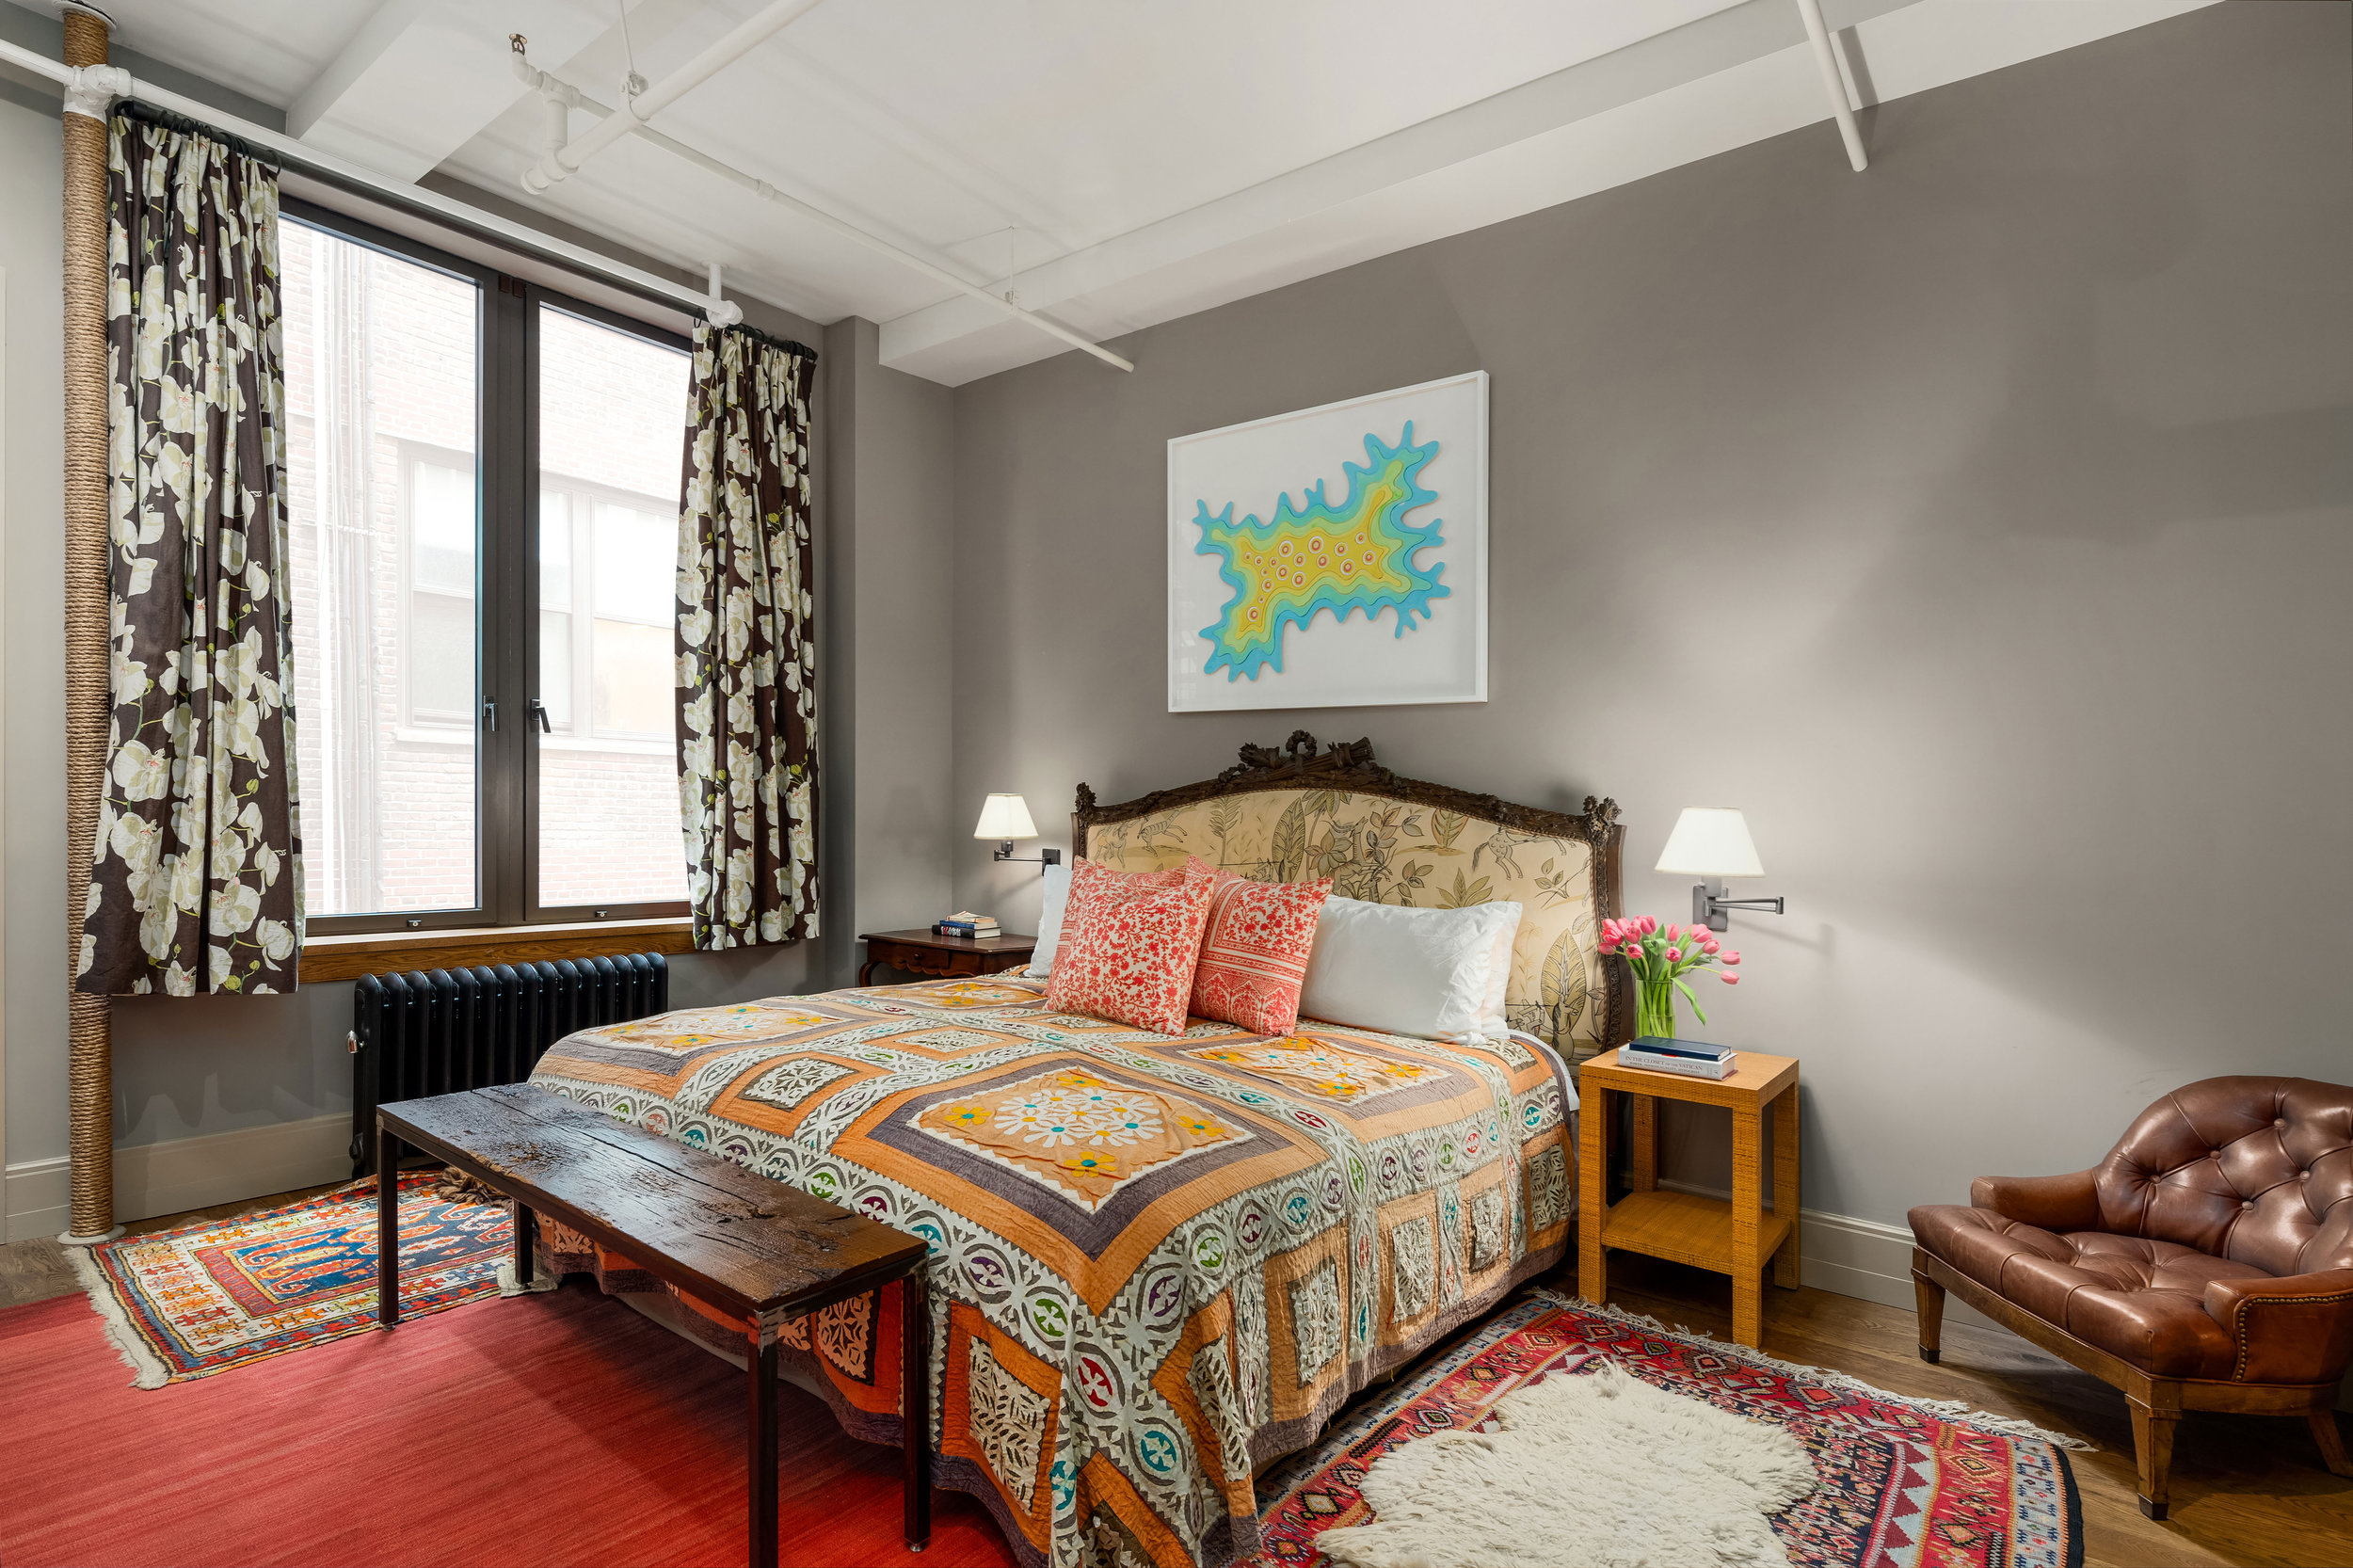 142West26thStreet9-ChelseaNewYork_Holly_Parker_DouglasElliman_Photography_79380384_high_res.jpg